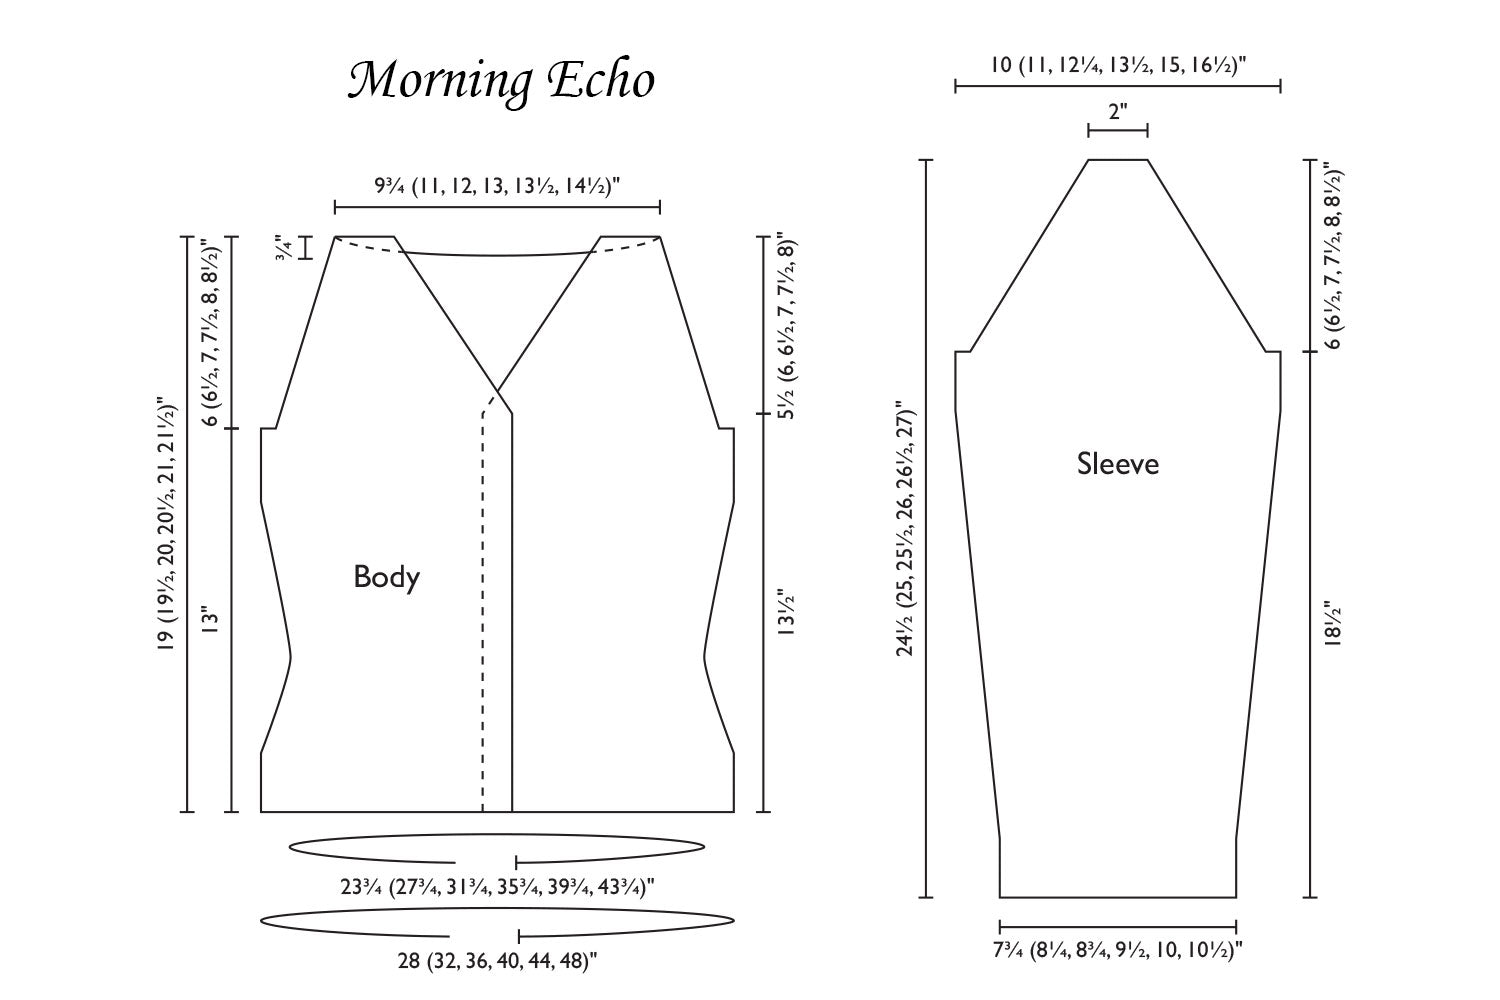 Detailed schematic line drawing with dimensions for Morning Echo cardigan